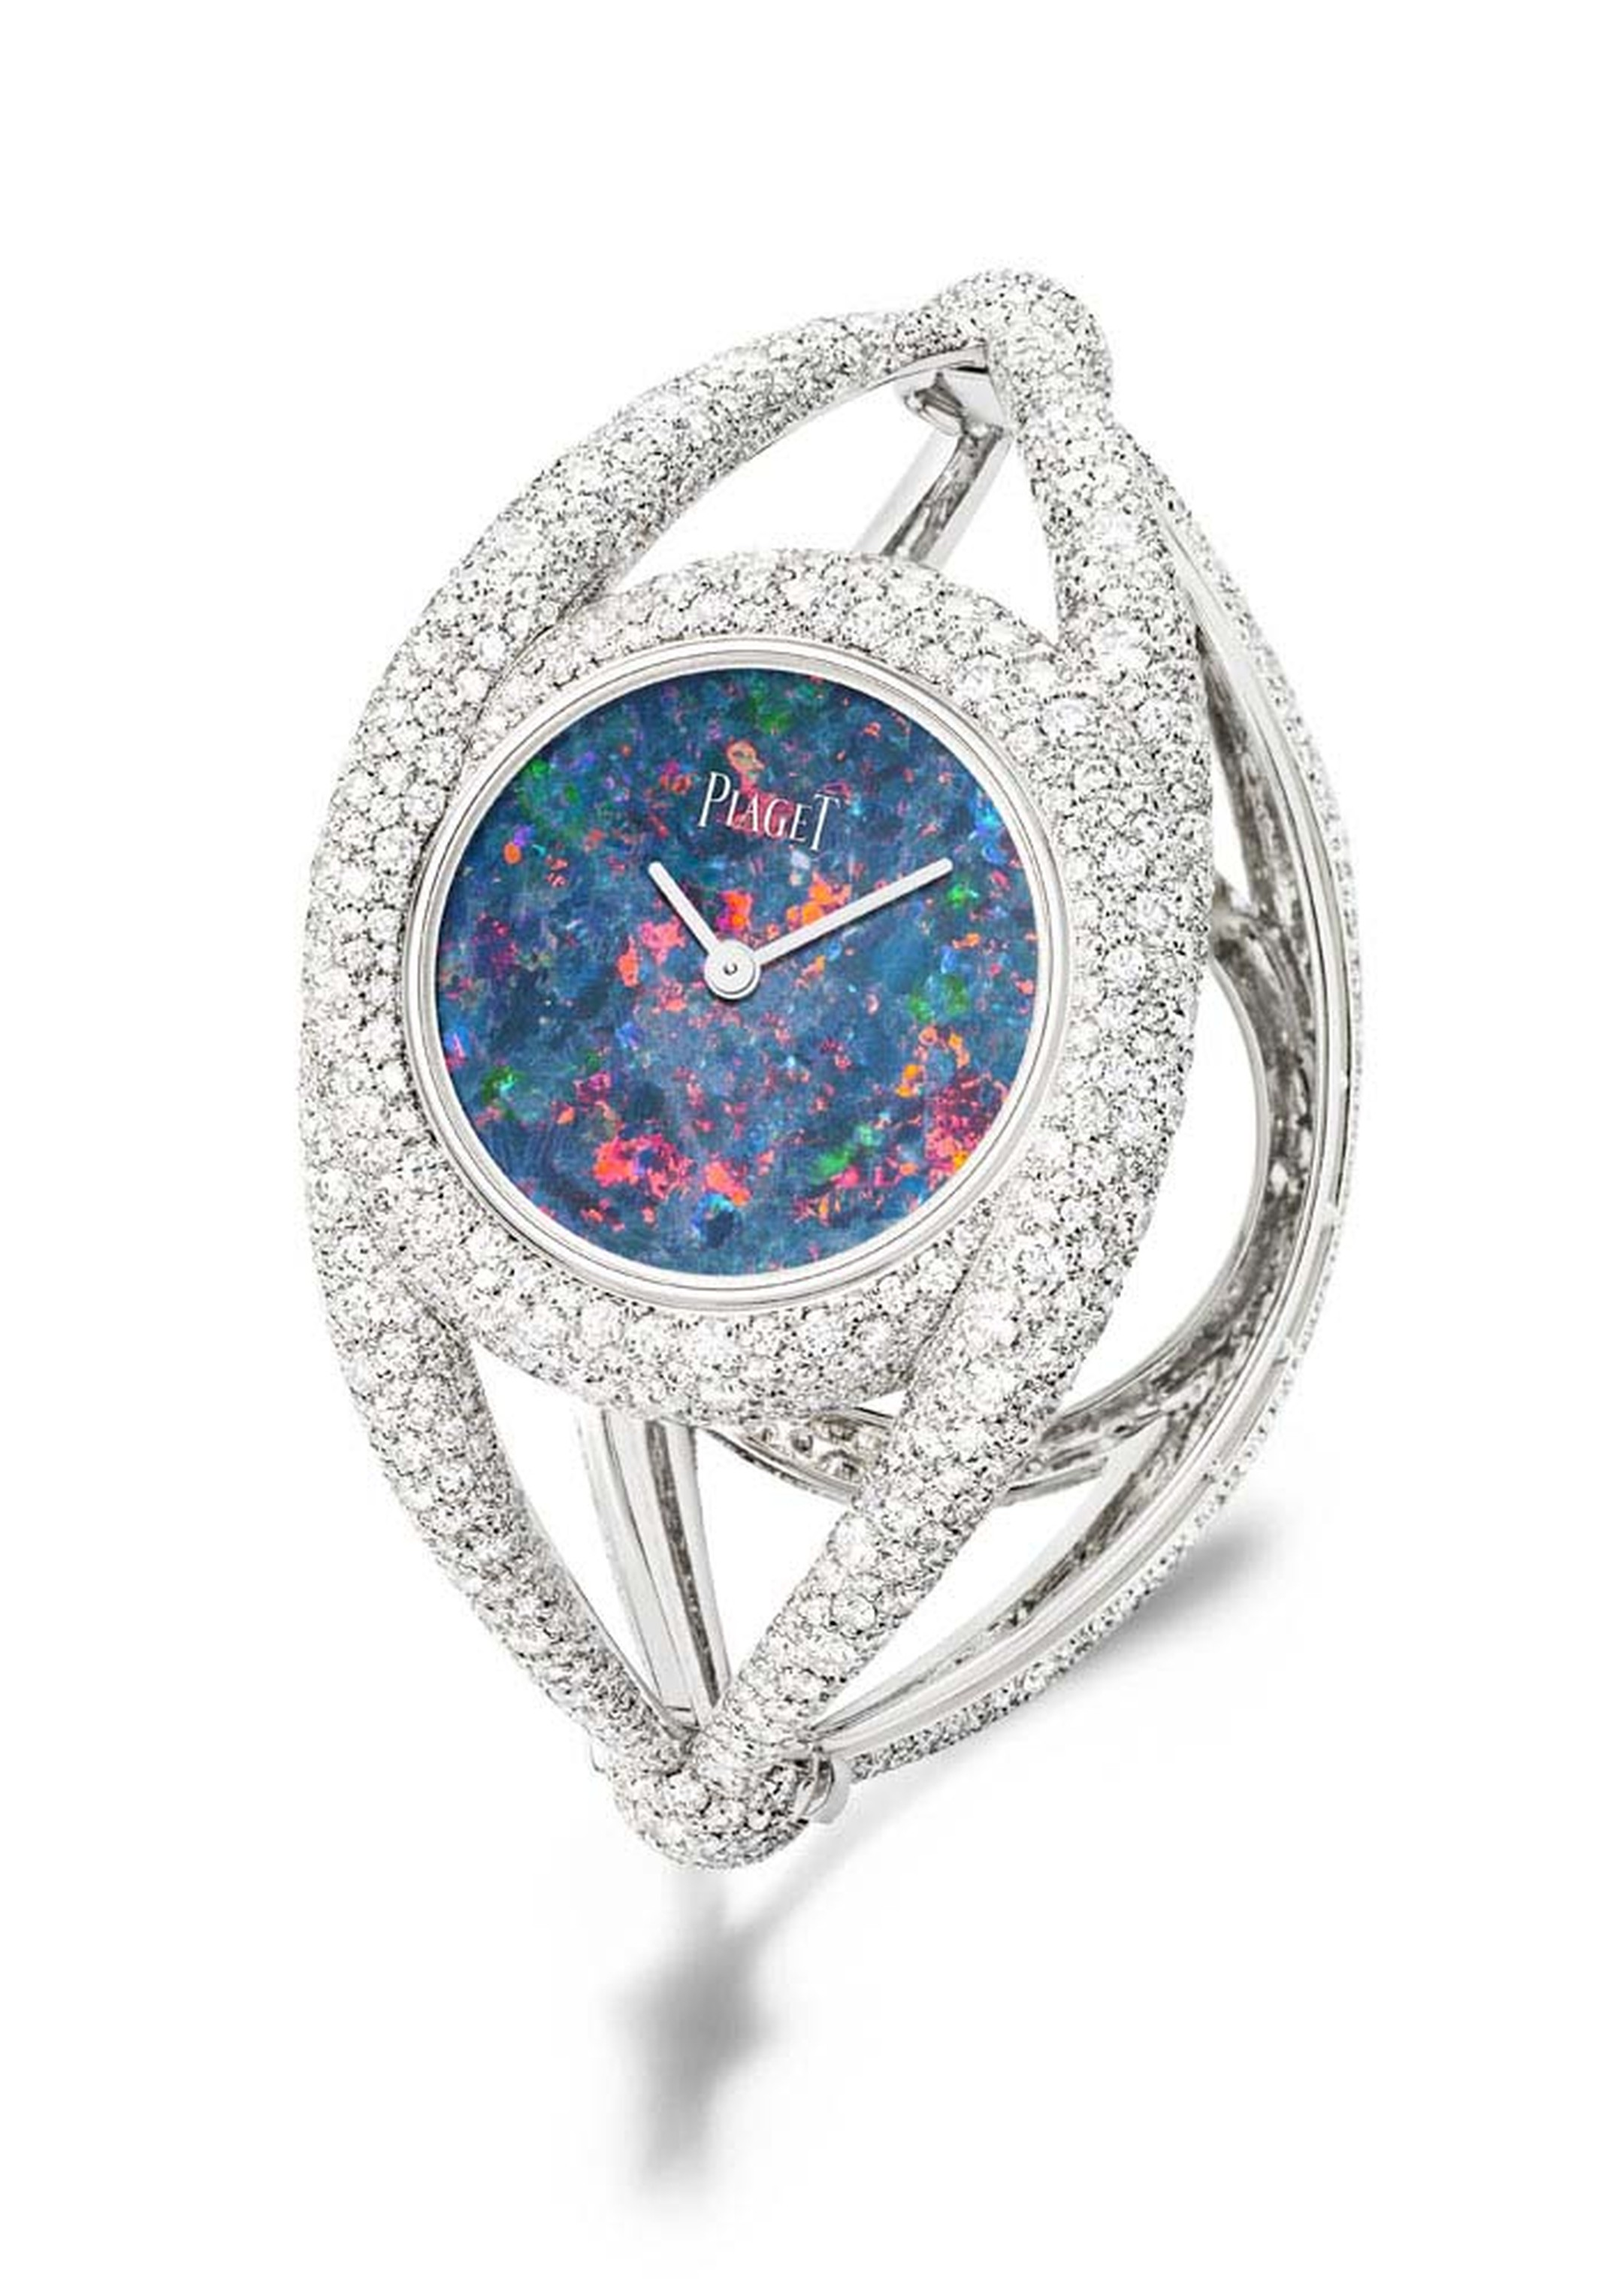 Cuff timepiece from the Extremely Piaget high jewellery collection in white gold with a natural blue opal dial and 1,699 brilliant-cut diamonds.